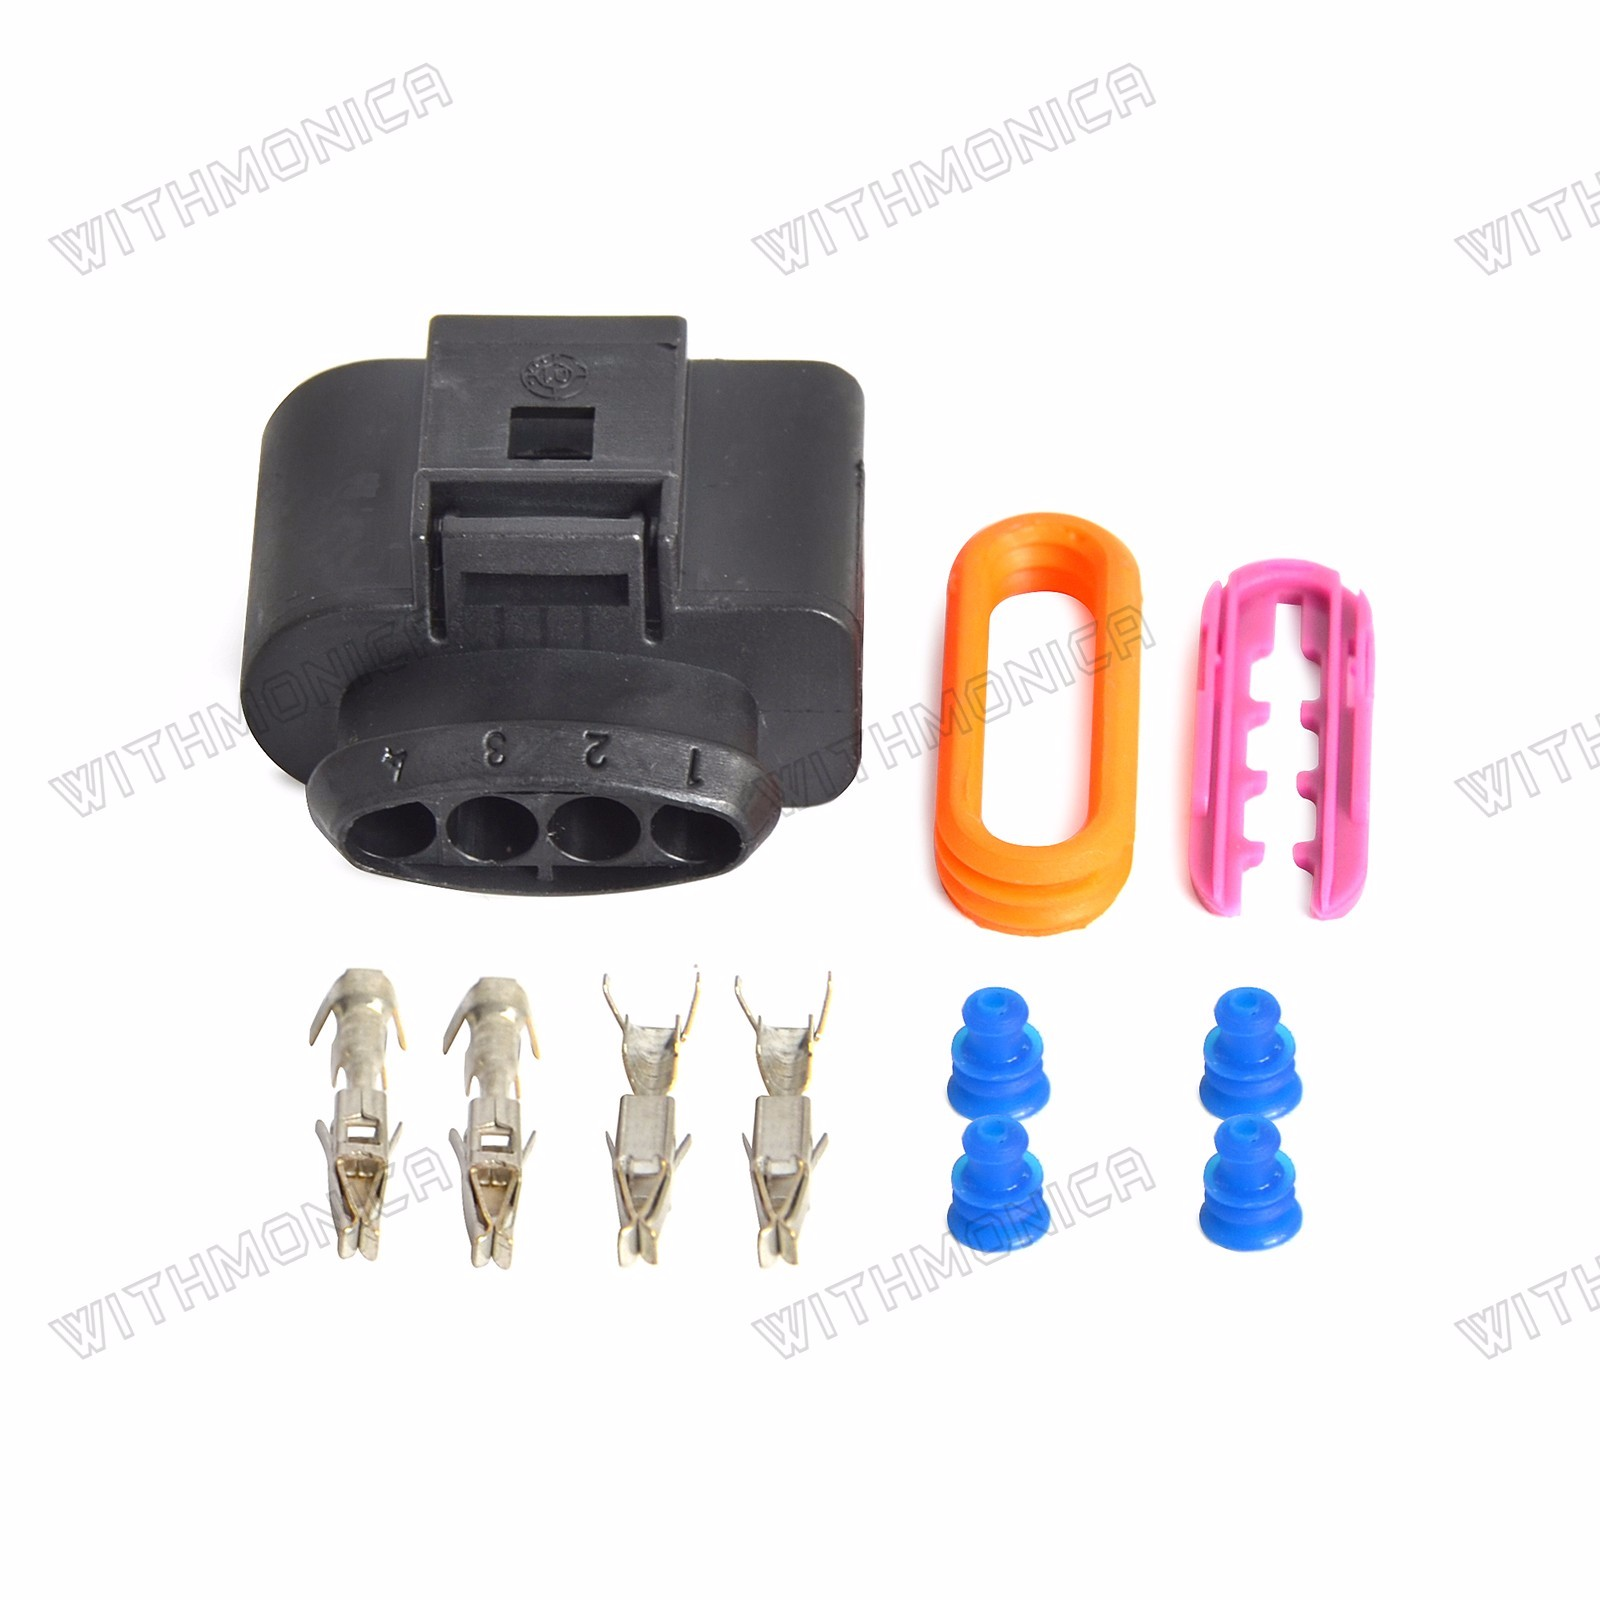 Audi/Vw Ignition Coil Wiring Harness Connector Repair Kit A4 A6 A8,Passat  Jetta